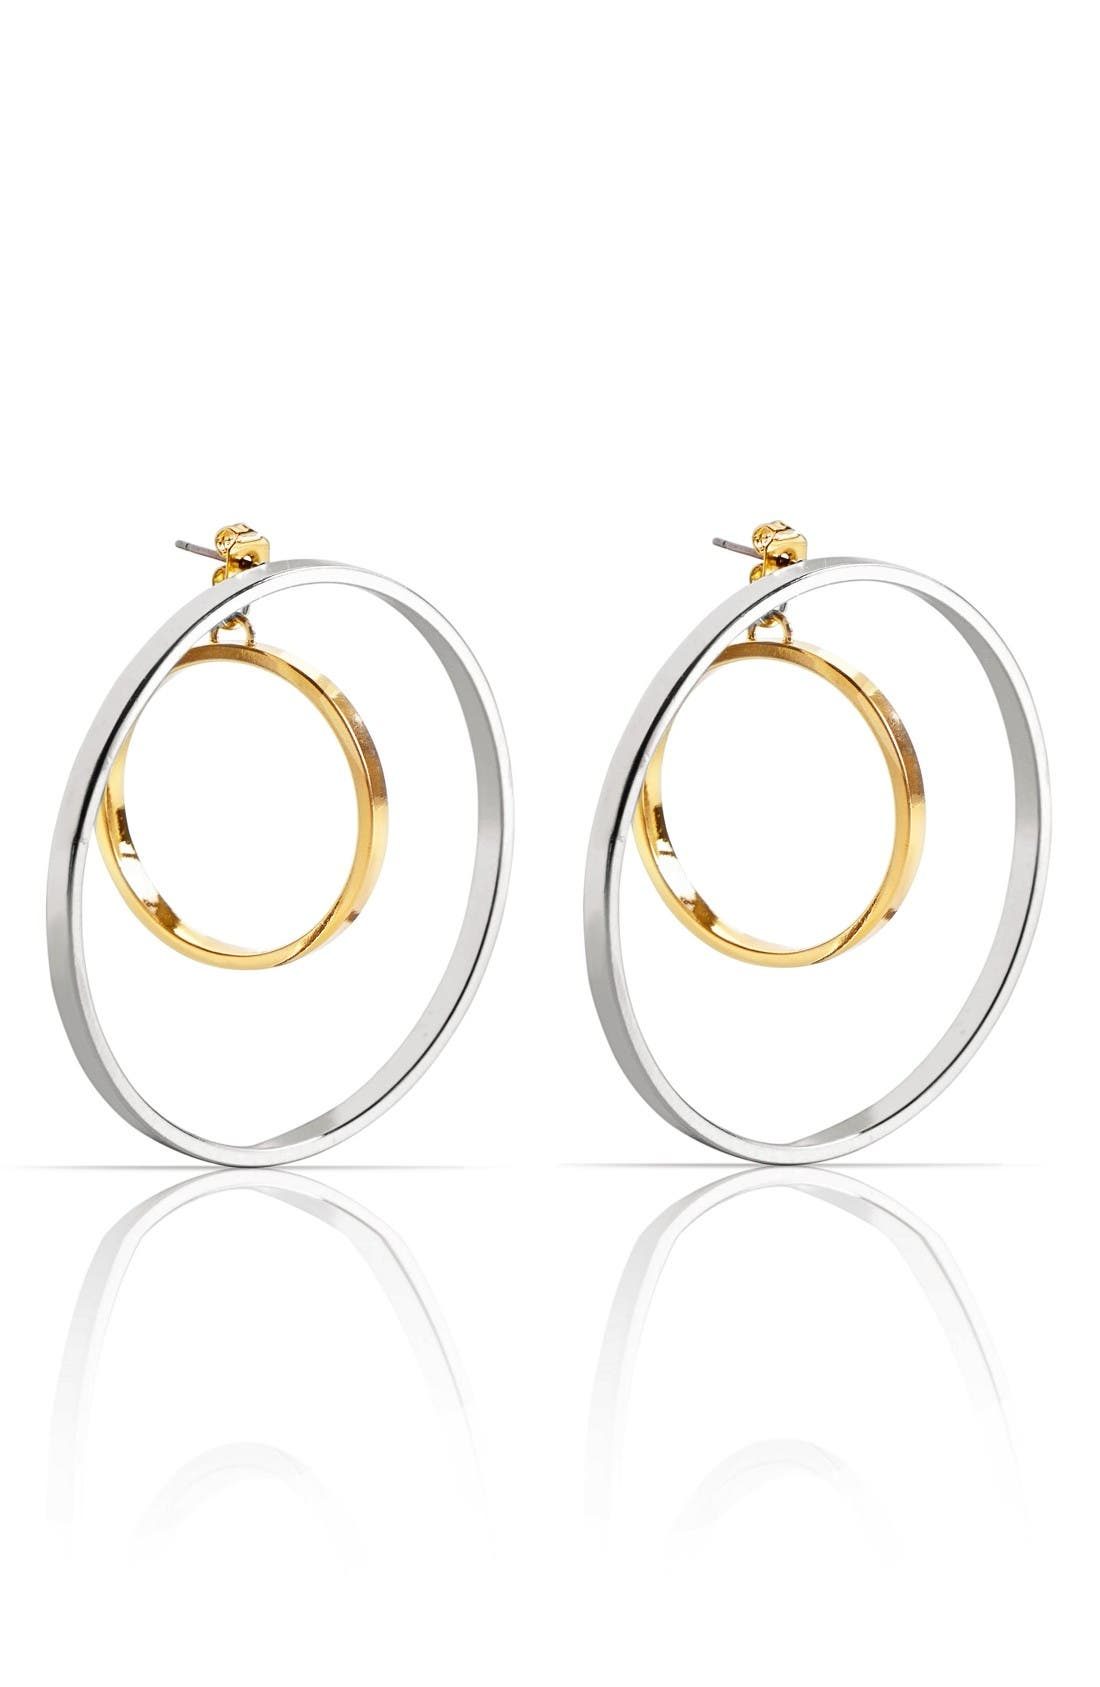 Rise Hoop Earrings,                             Main thumbnail 1, color,                             Two Tone